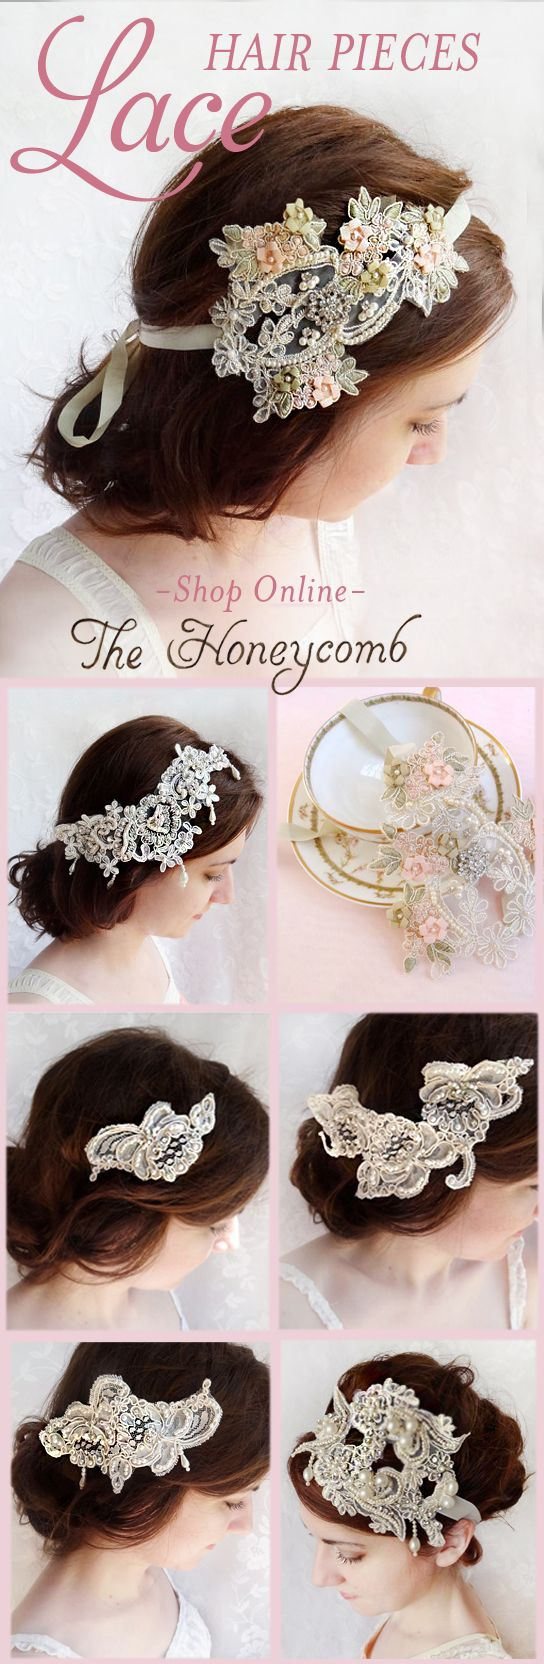 17 best ideas about hair accessories for brides on pinterest bridesmaid hair accessories hair accessories and bridal hair down styles